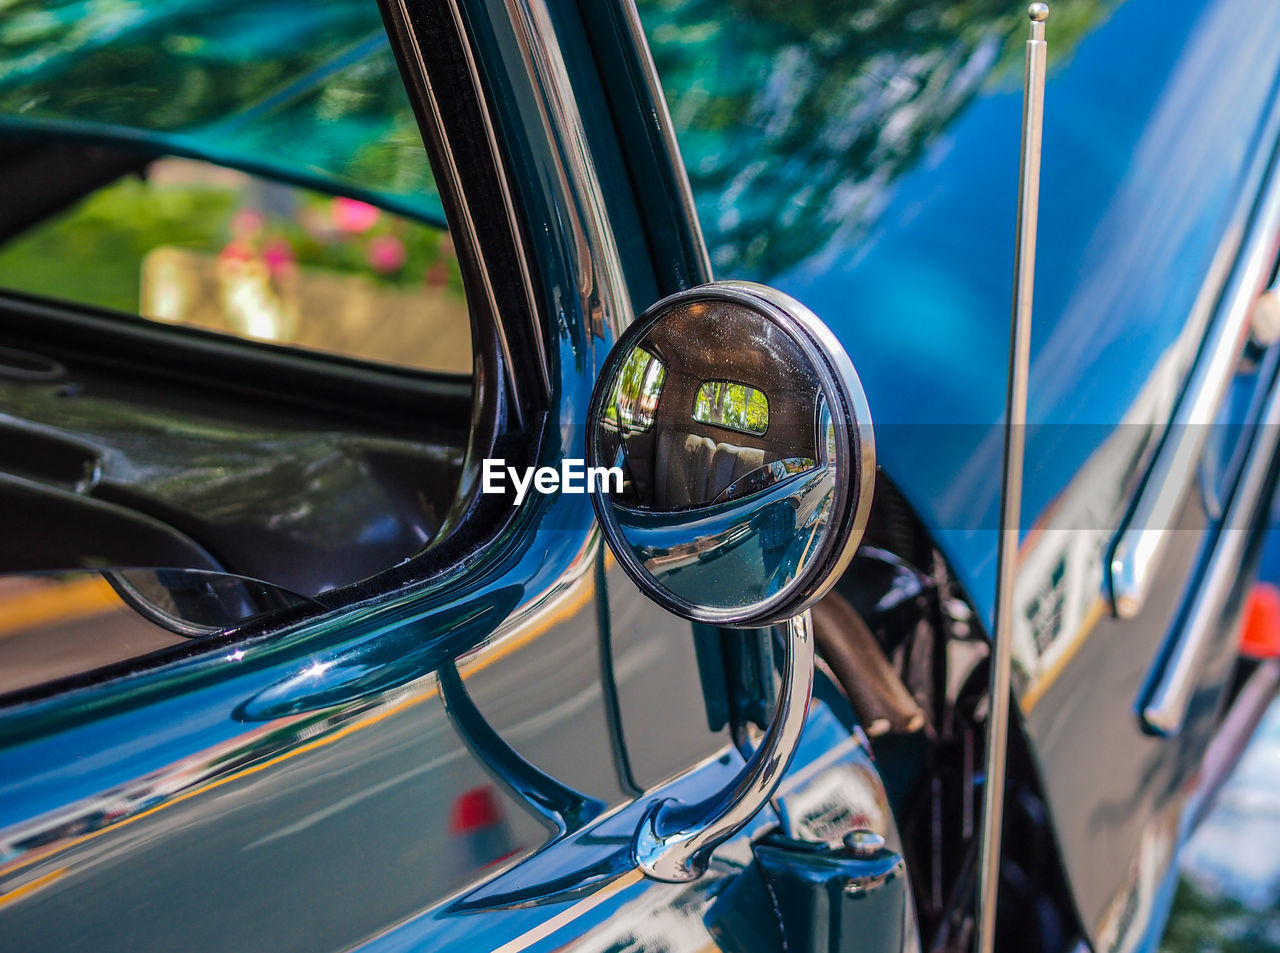 mode of transportation, land vehicle, transportation, car, reflection, motor vehicle, glass - material, side-view mirror, mirror, day, focus on foreground, close-up, outdoors, no people, headlight, transparent, retro styled, vehicle mirror, detail, vintage car, chrome